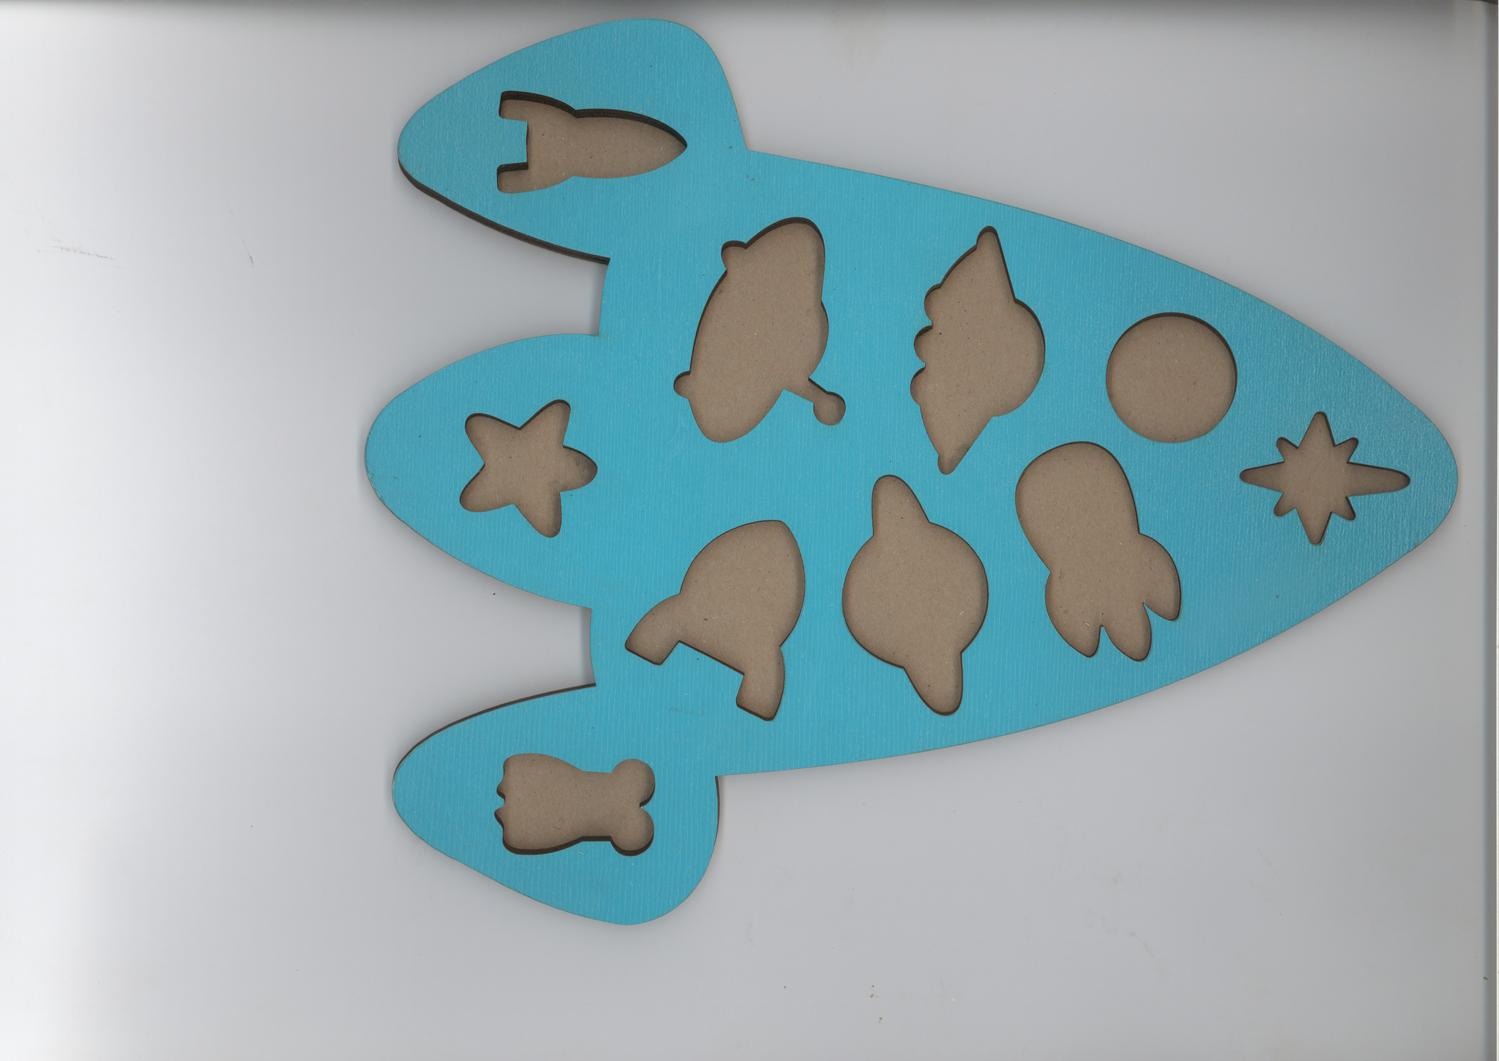 Laser Cut Shapes Puzzle Wooden Educational Toys For Kids Free Vector